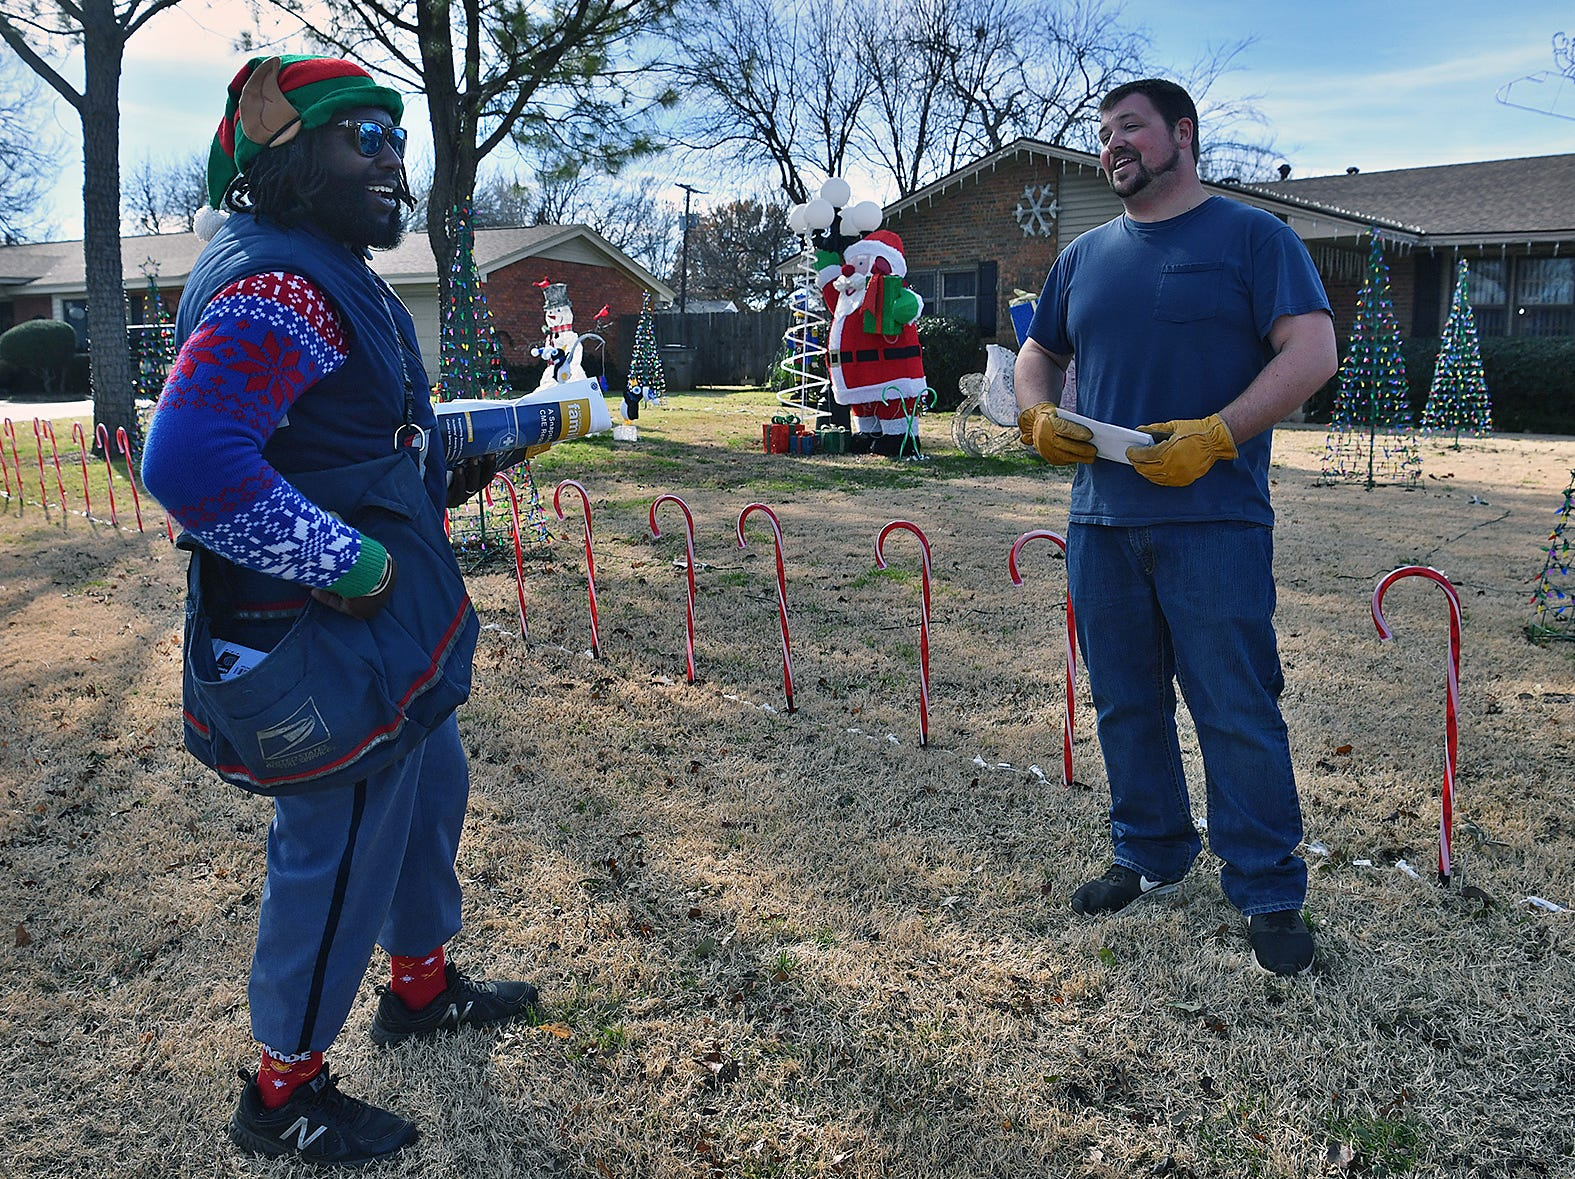 Postal carrier Joe Forbins talks with customer Jessie Elliott Friday afternoon. Forbins likes to spread cheer with fun hats, Christmas sweaters and a positive atitude.